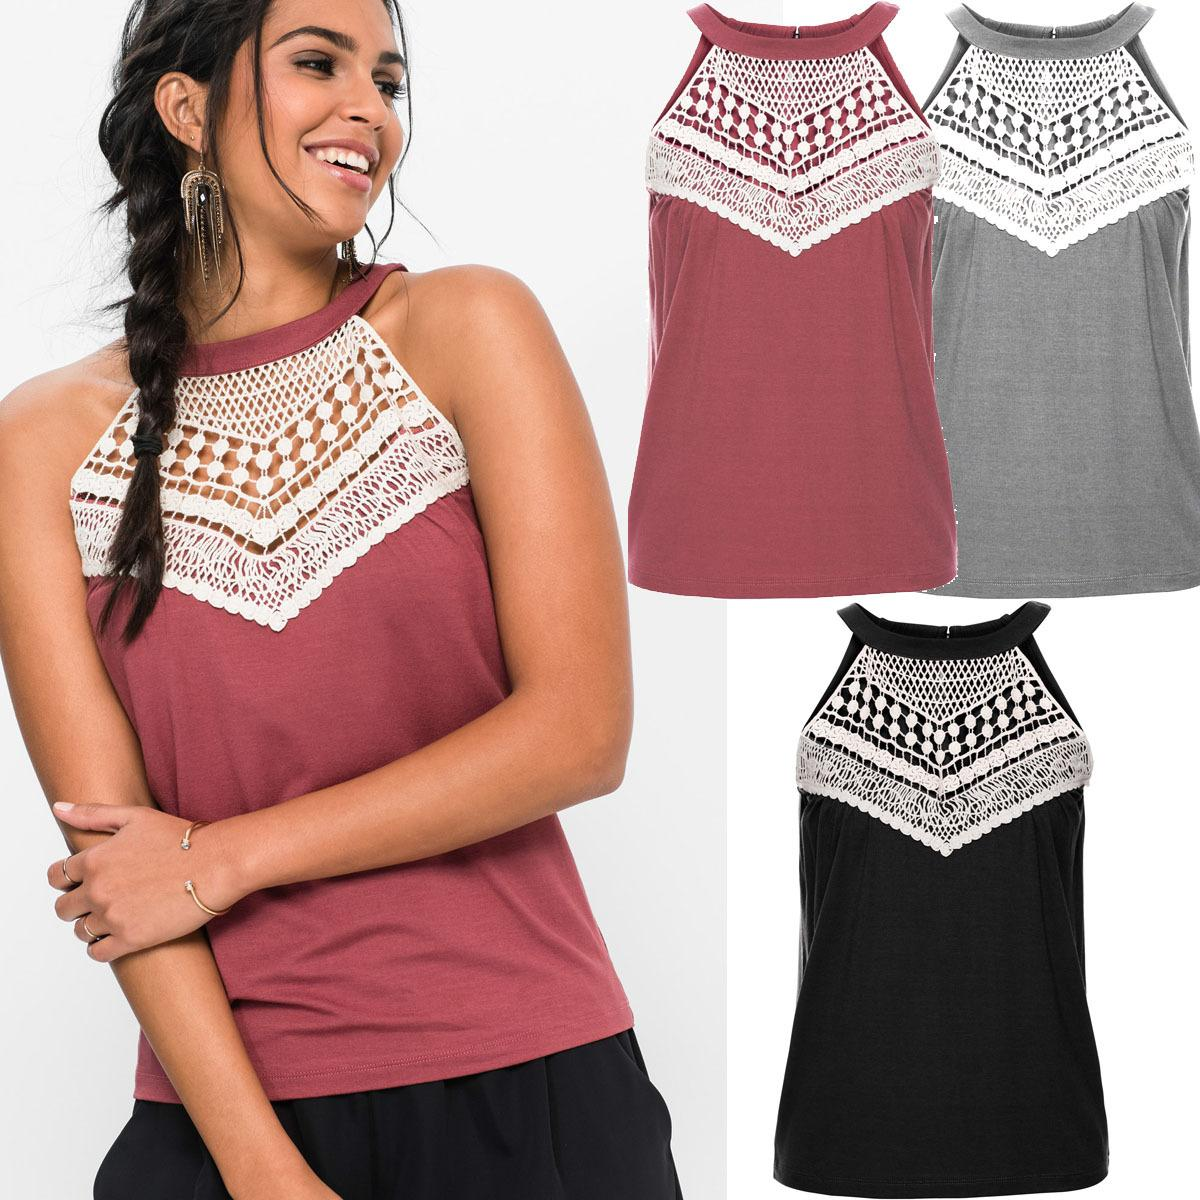 Women's womens designer Tops Tees Clothing New summer European and American trade sleeveless lace splicing women's T-shirt vest crop tops